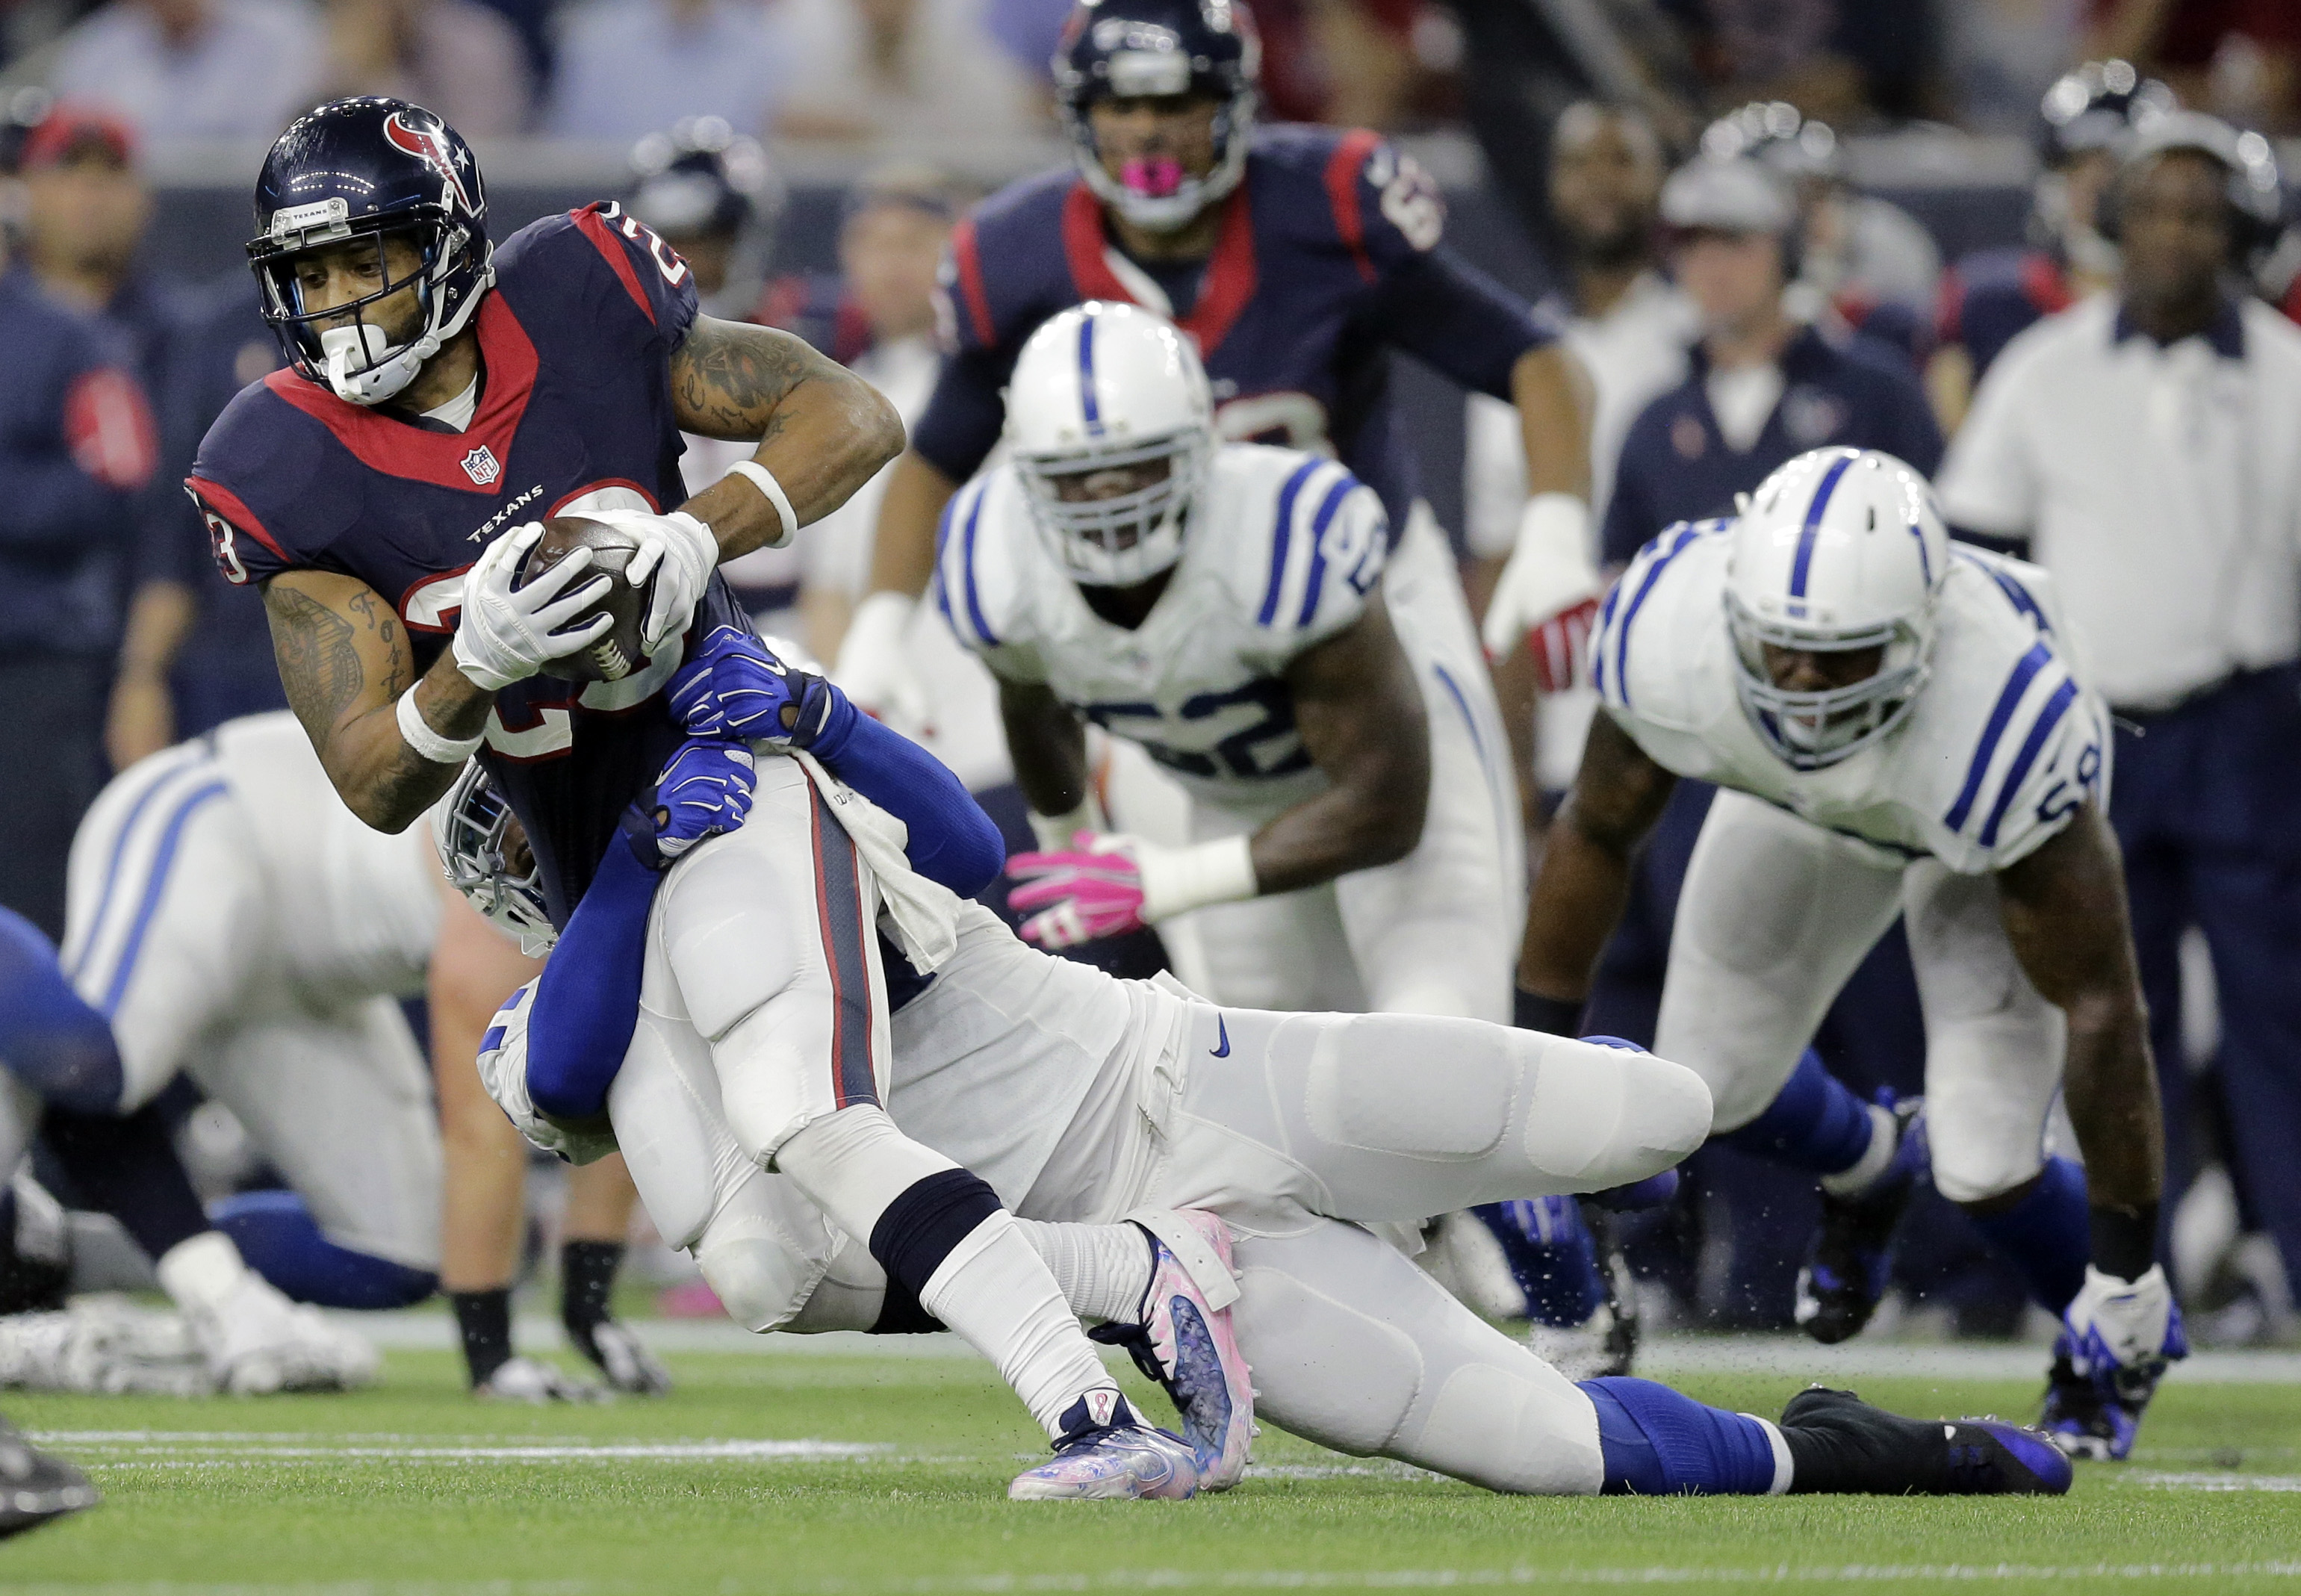 Houston Texans' Arian Foster (23) is stopped by Indianapolis Colts' Jonathan Newsome (91) during the first half of an NFL football game Thursday, Oct. 8, 2015, in Houston. (AP Photo/Patric Schneider)